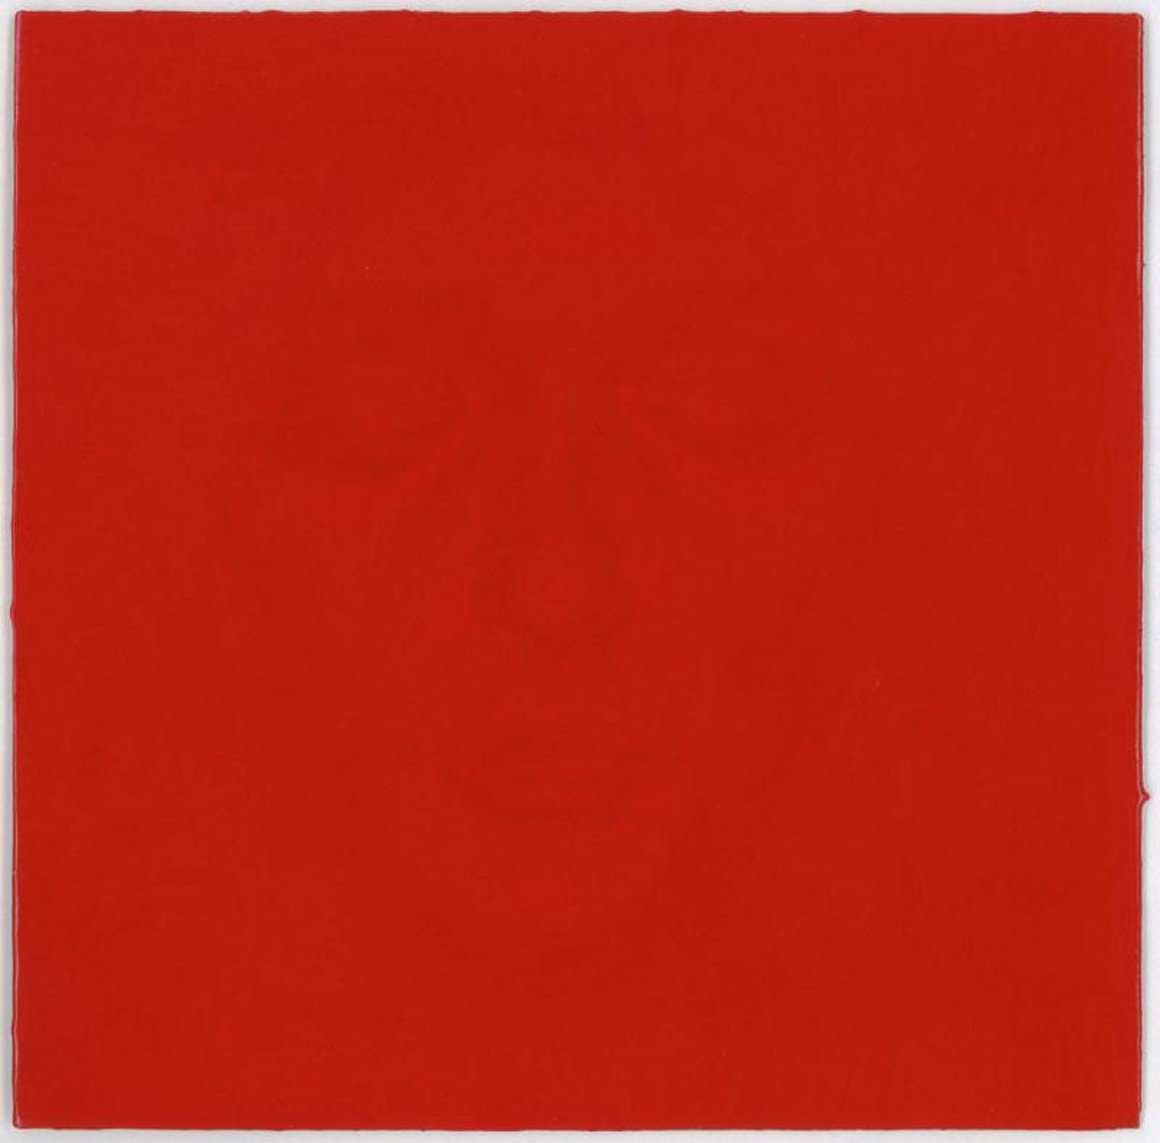 "<p><span class=""name"">Benjamin Cottam</span><br><em>Honey Boo Boo</em><span class='media'>Wax crayon on Smythson Featherweight paper</span>6.25 x 6.25 in  (15.9 x 15.9 cm)<br>2014<br><a class='inquire' href='mailto:info@gildargallery.com?subject=Artwork Inquiry BCOT0001&body=I am interested in finding out more about Honey Boo Boo by Benjamin Cottam'>Inquire</a></p>"